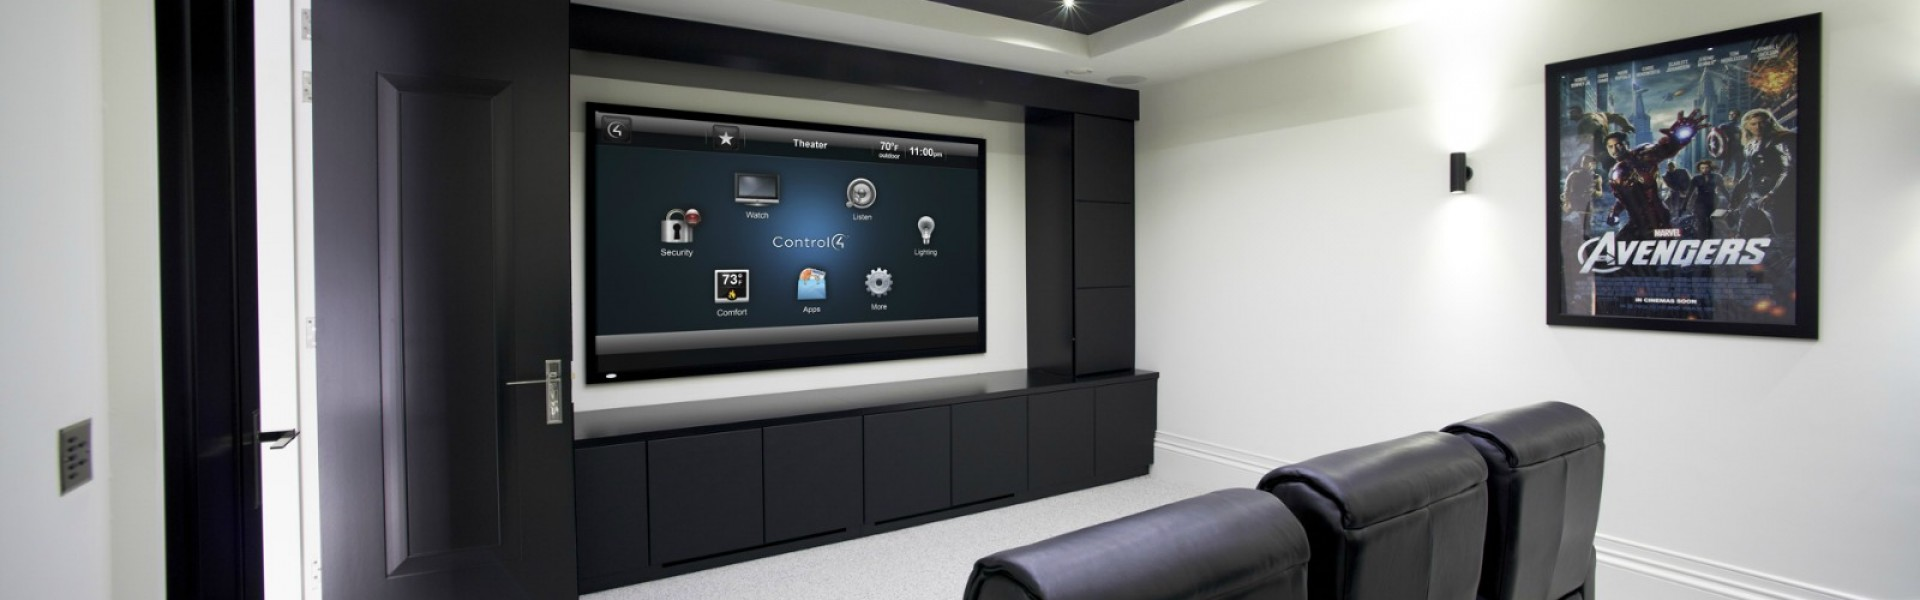 Magen Home Automation